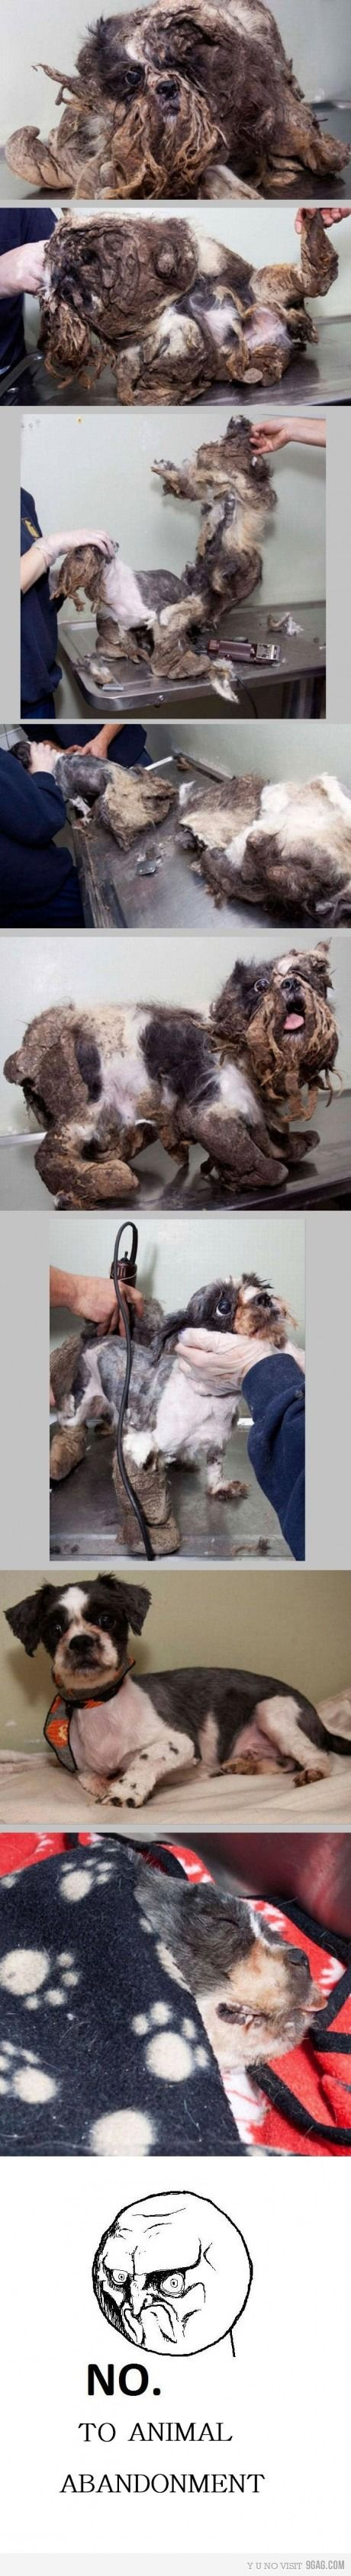 I really don't understand how you could let this happen an innocent animal. They deserve so much better than this.